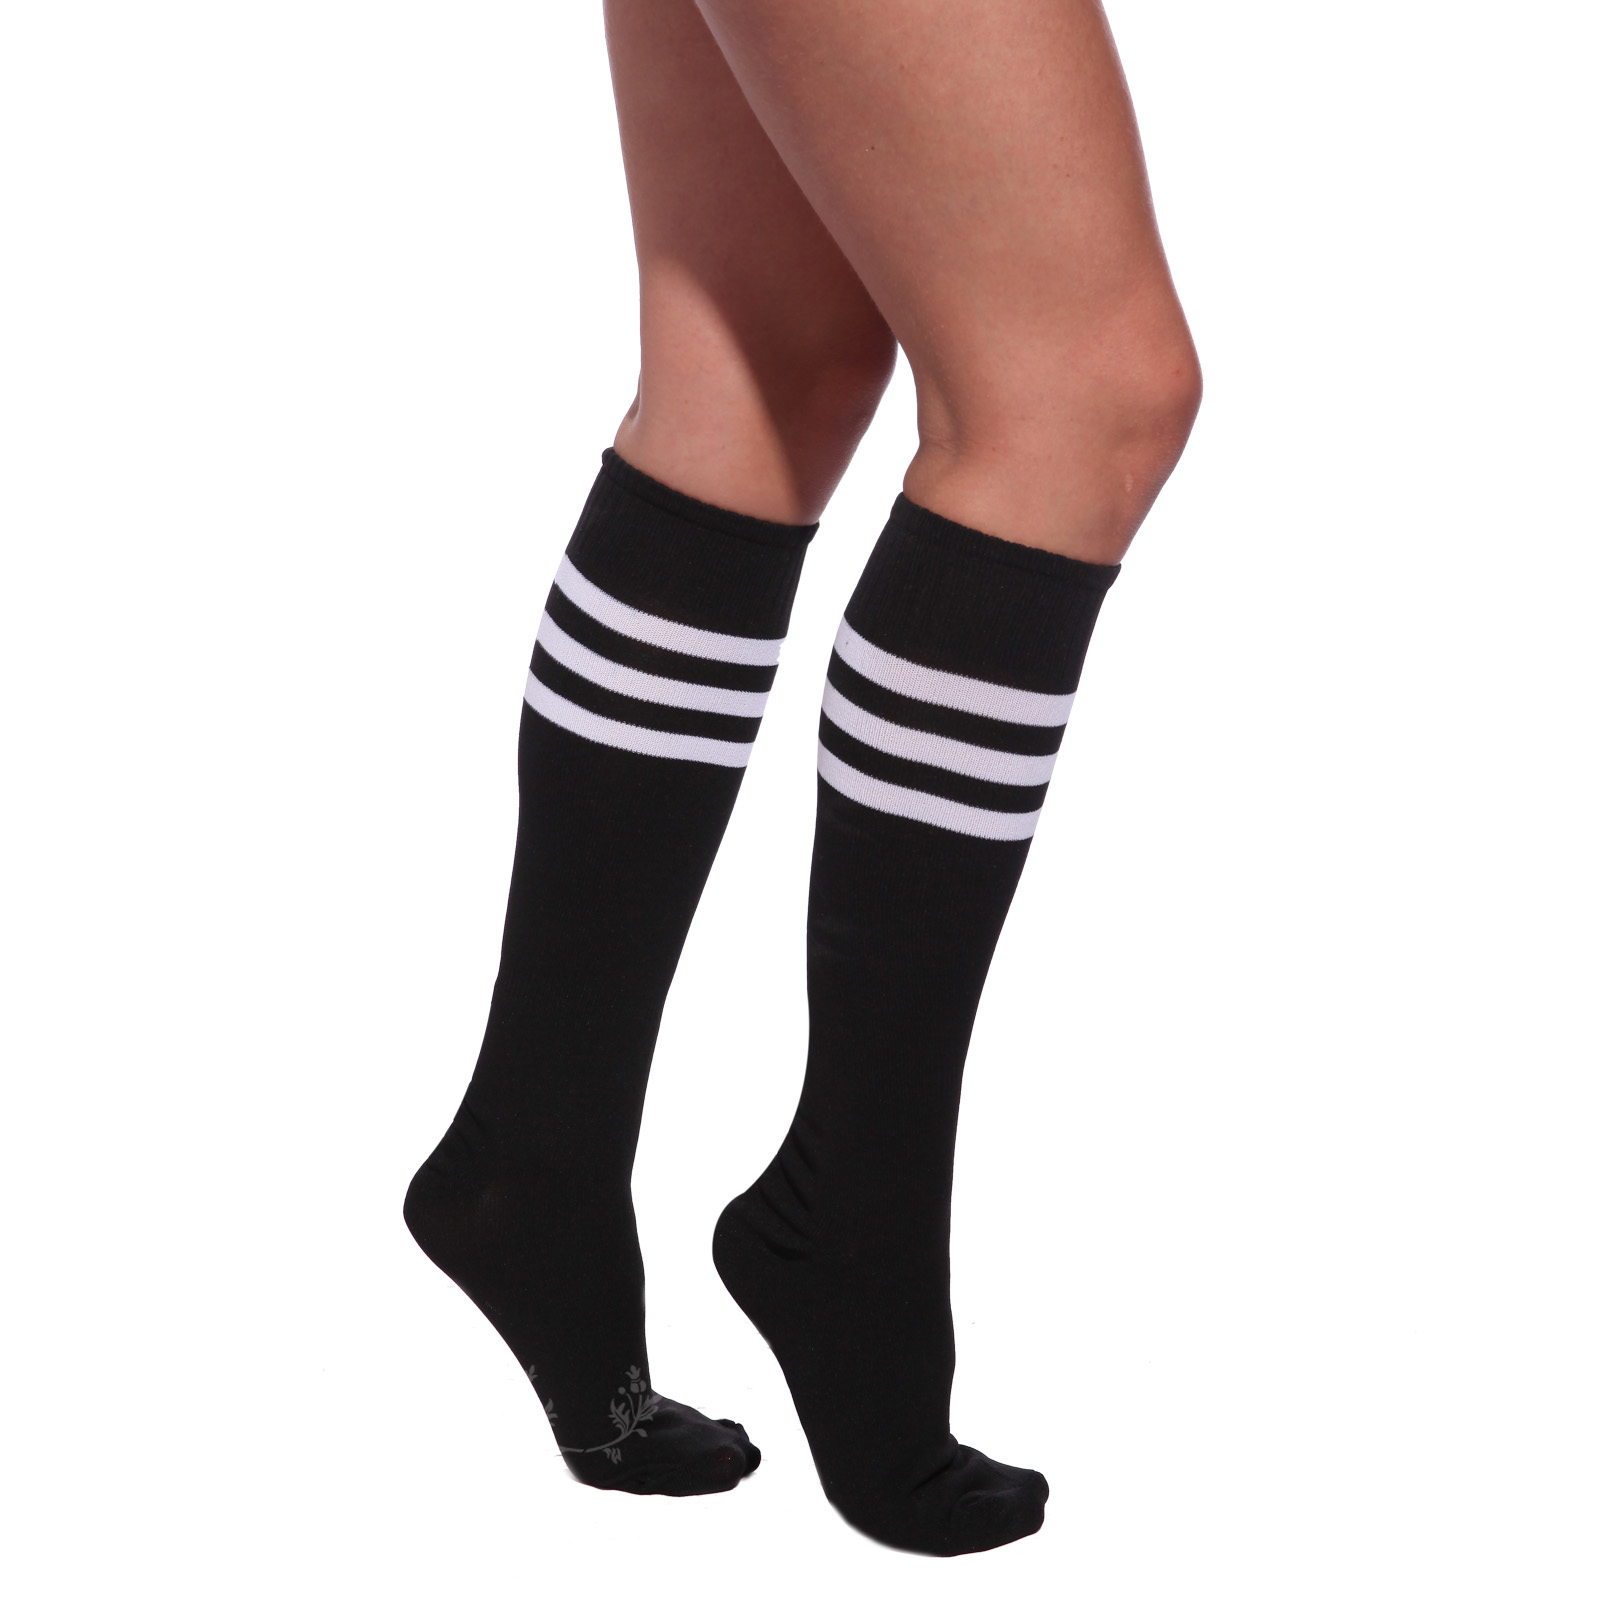 Our custom printed sport knee high socks for men and women are perfect for any sport and can be totally personalized for individuals and teams. Use the design tools to upload images or graphics and choose from our font collection for the perfect text. No minimums and bulk discounts available.